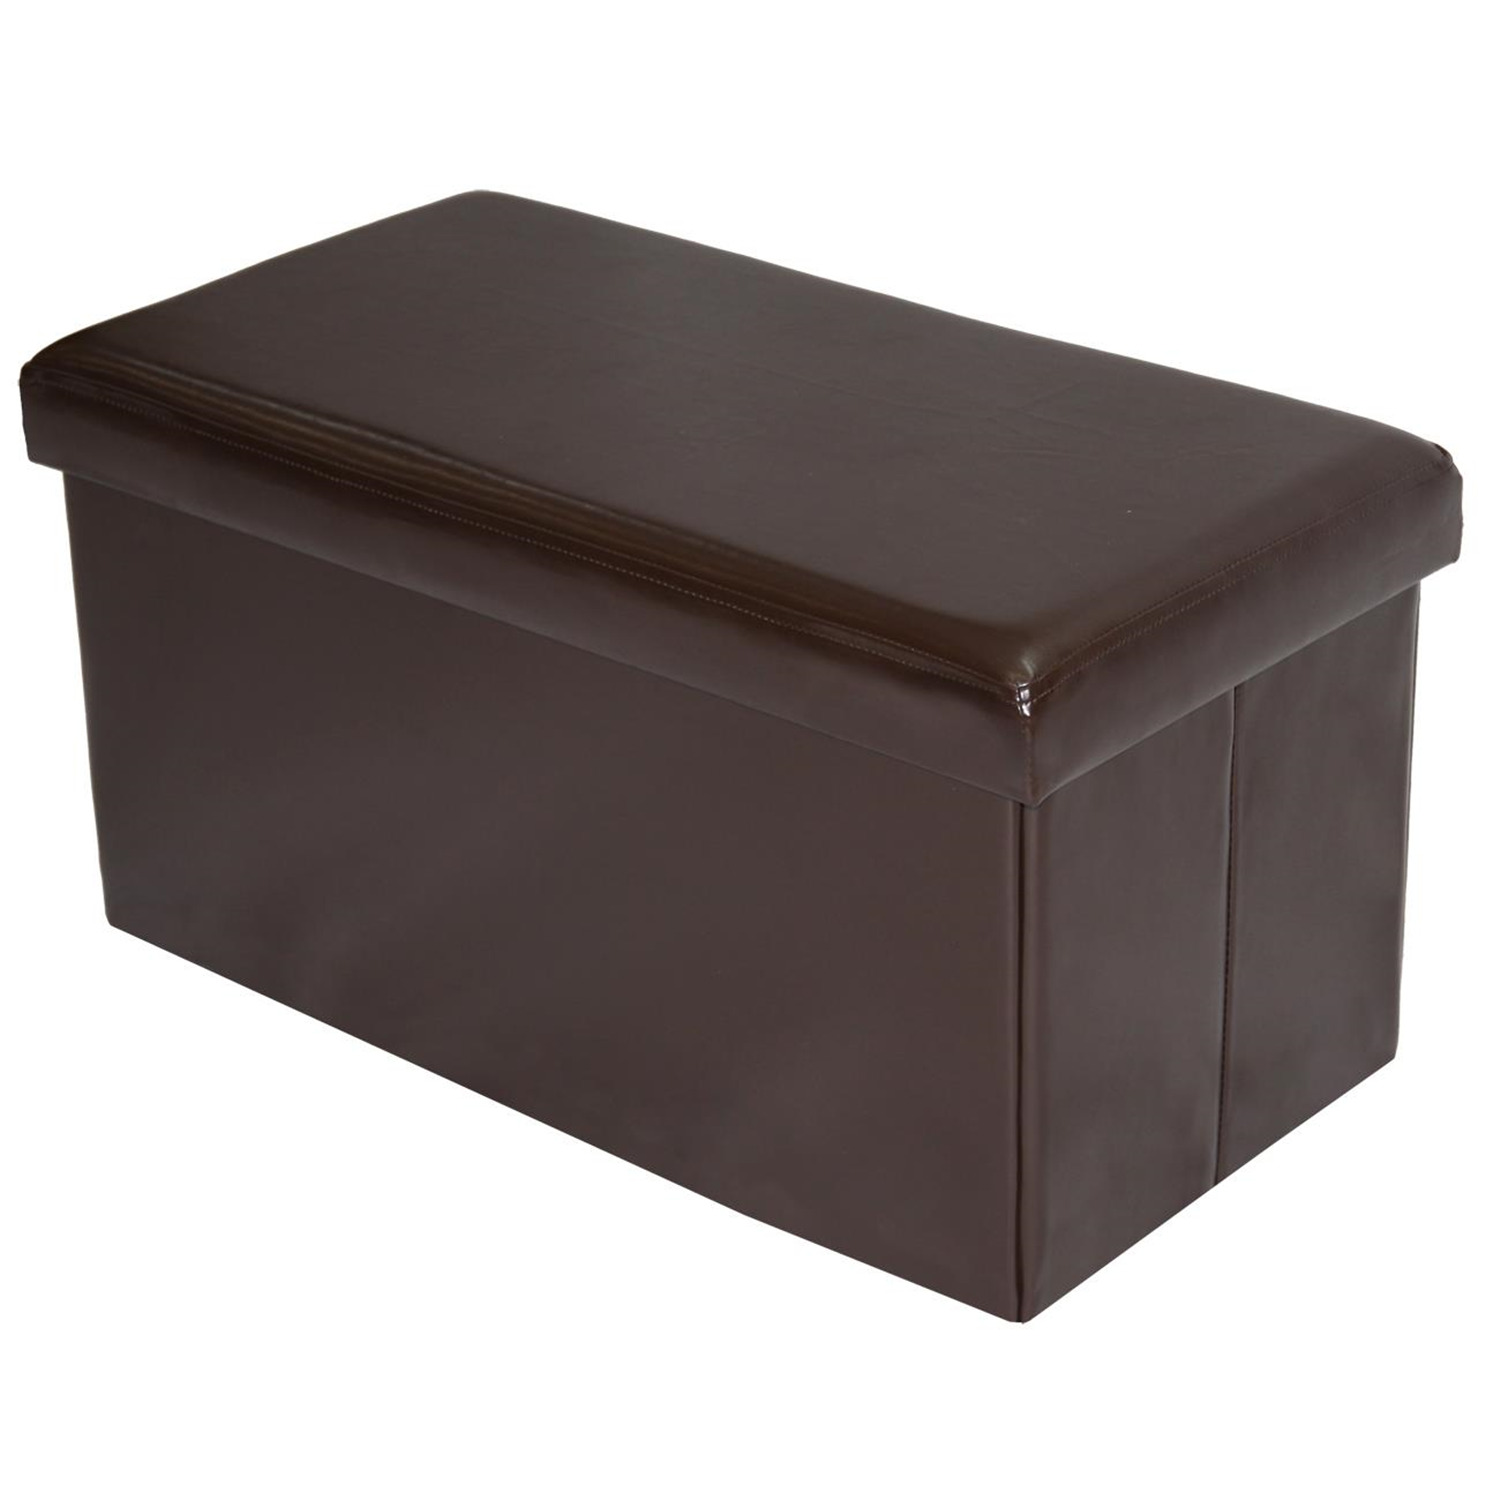 L1 LIVING L1 Folding Storage Ottoman Seat Bench Footrest Seat. Sold by Freshware. Add to cart to see Sale price $ FURINNO FNAJEX Wall-Mounted Drop-Leaf Folding Table, Cherry. Sold by Freshware. $ $ Kinbor Folding Bath .